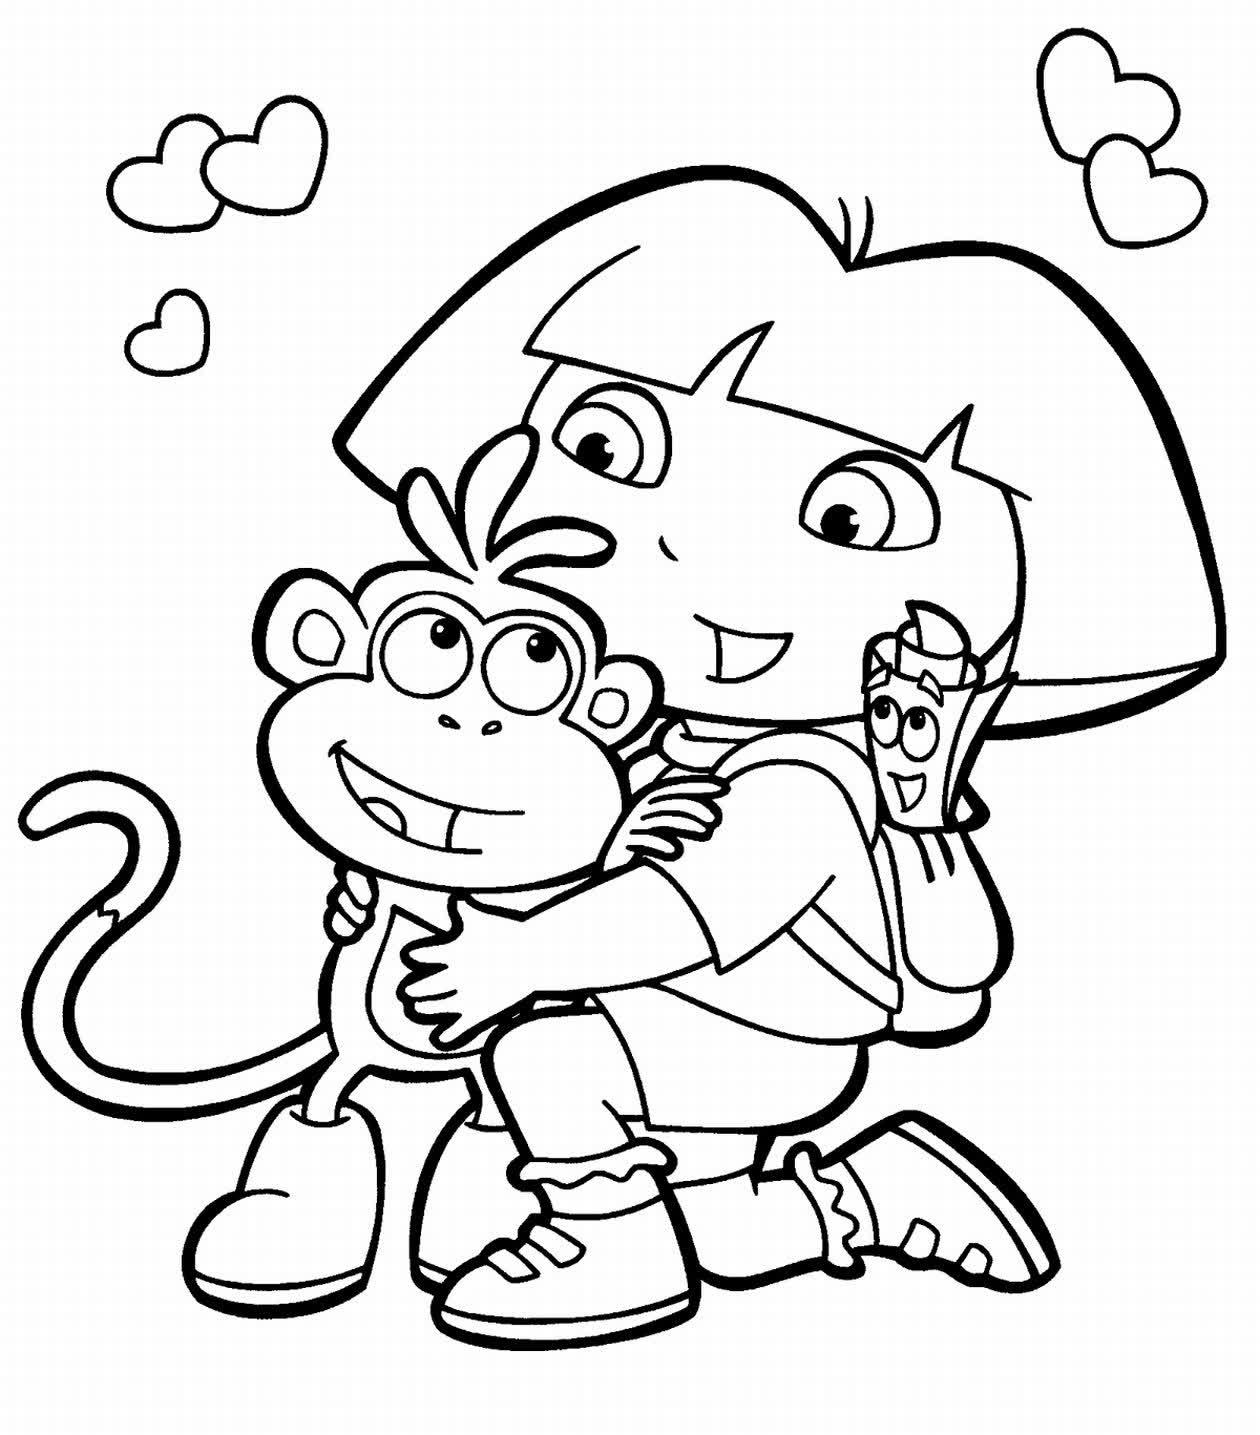 Printable Coloring Pages Diary Of A Wimpy Kid Coloring Page Kid Coloring Pages